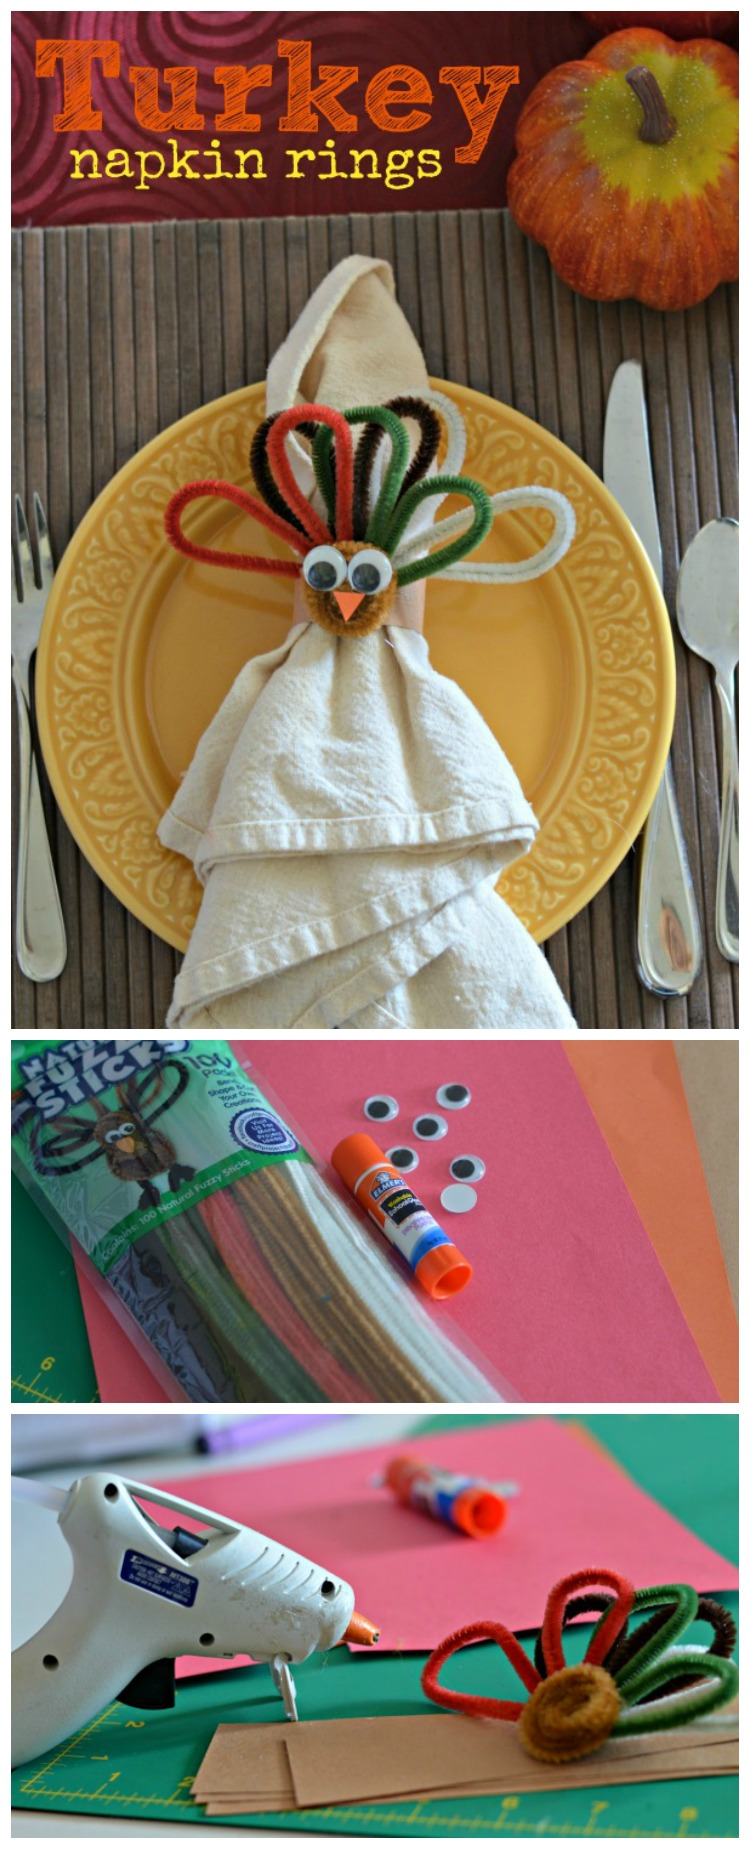 Looking for ways to make your Thanksgiving table festive? These turkey napkin rings will do just that! Grab a few supplies and get crafting!